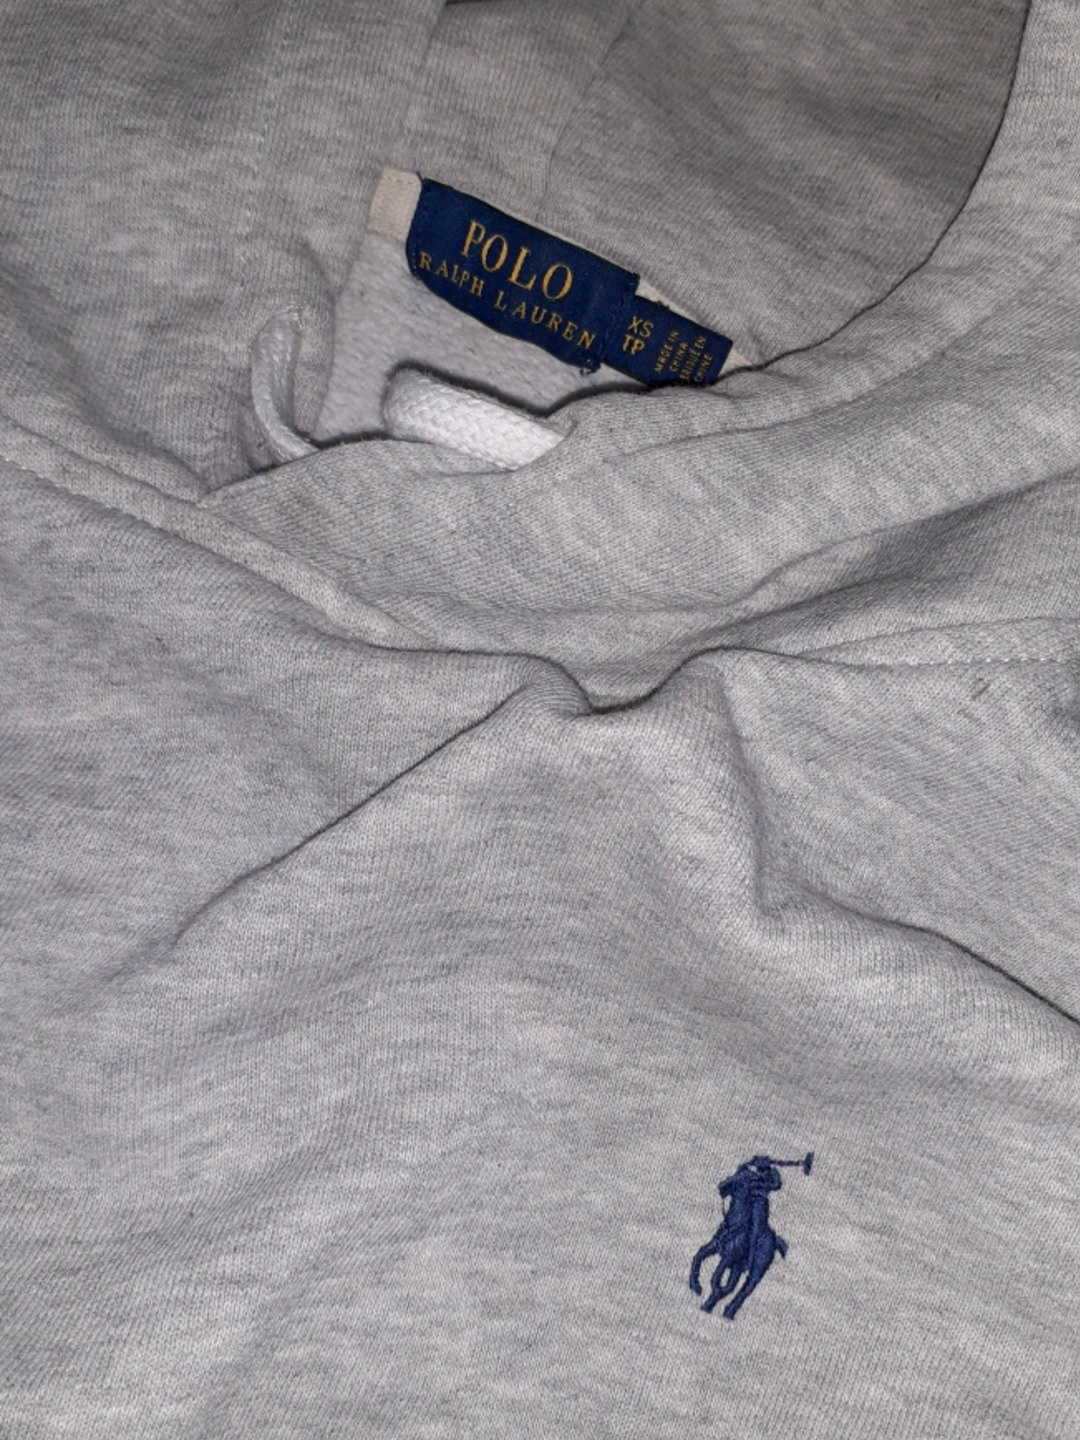 Damen kapuzenpullover & sweatshirts - RALPH LAUREN photo 2